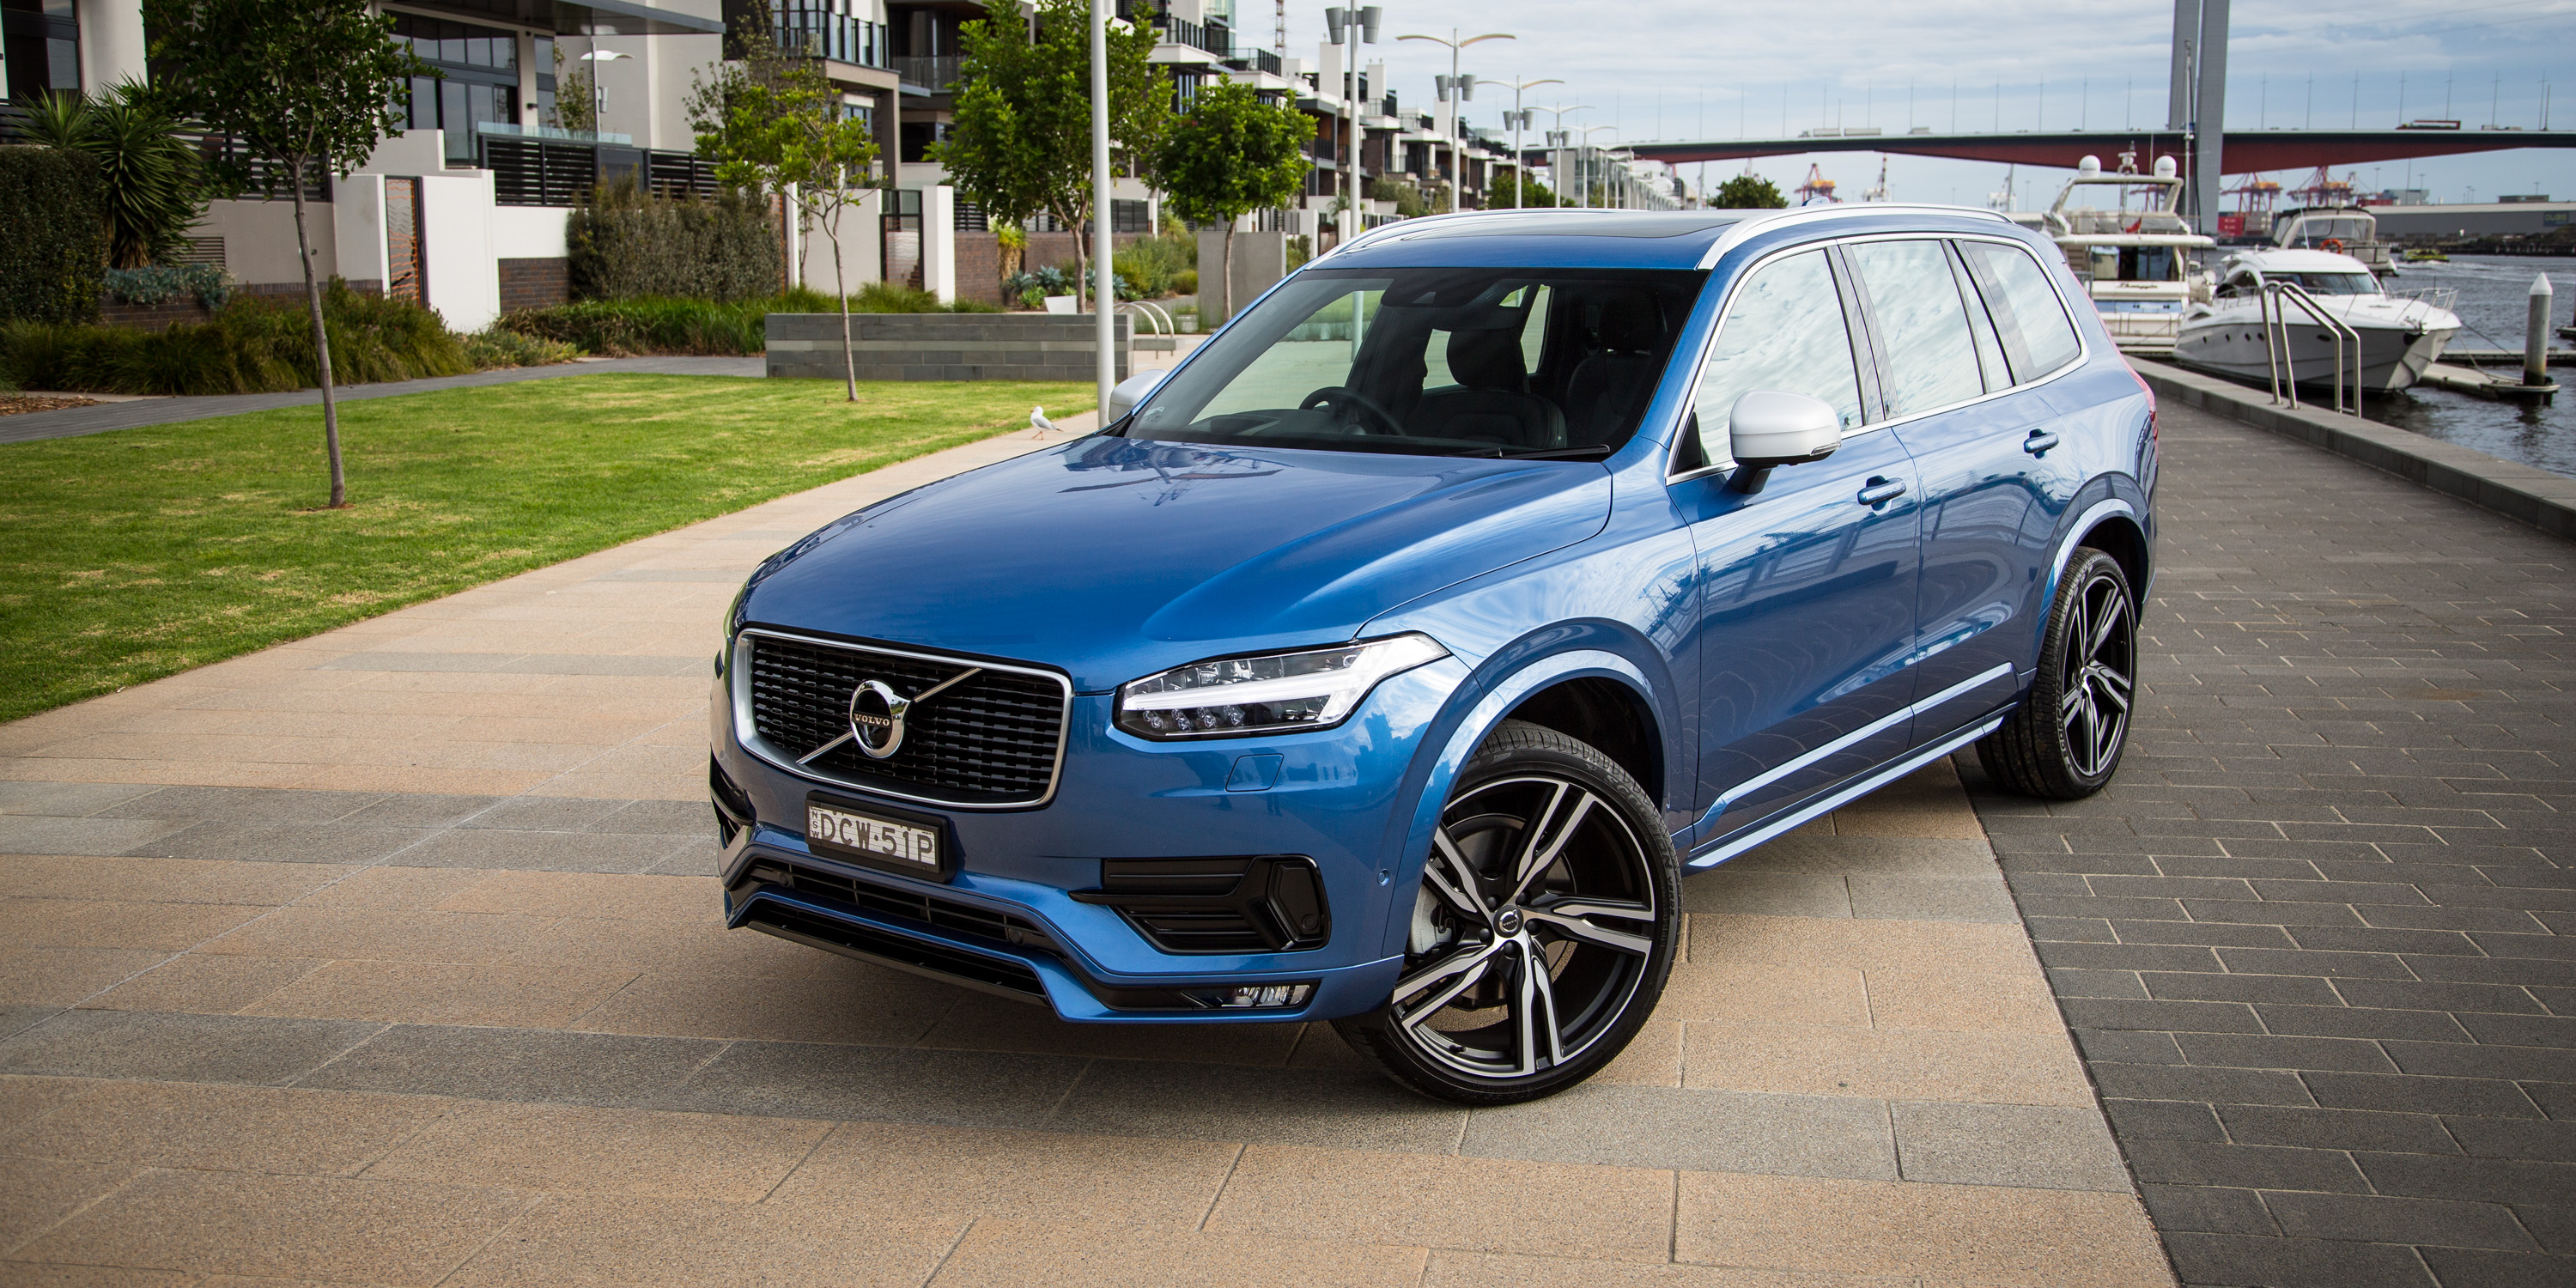 2016 volvo xc90 t6 r design long term report one caradvice. Black Bedroom Furniture Sets. Home Design Ideas